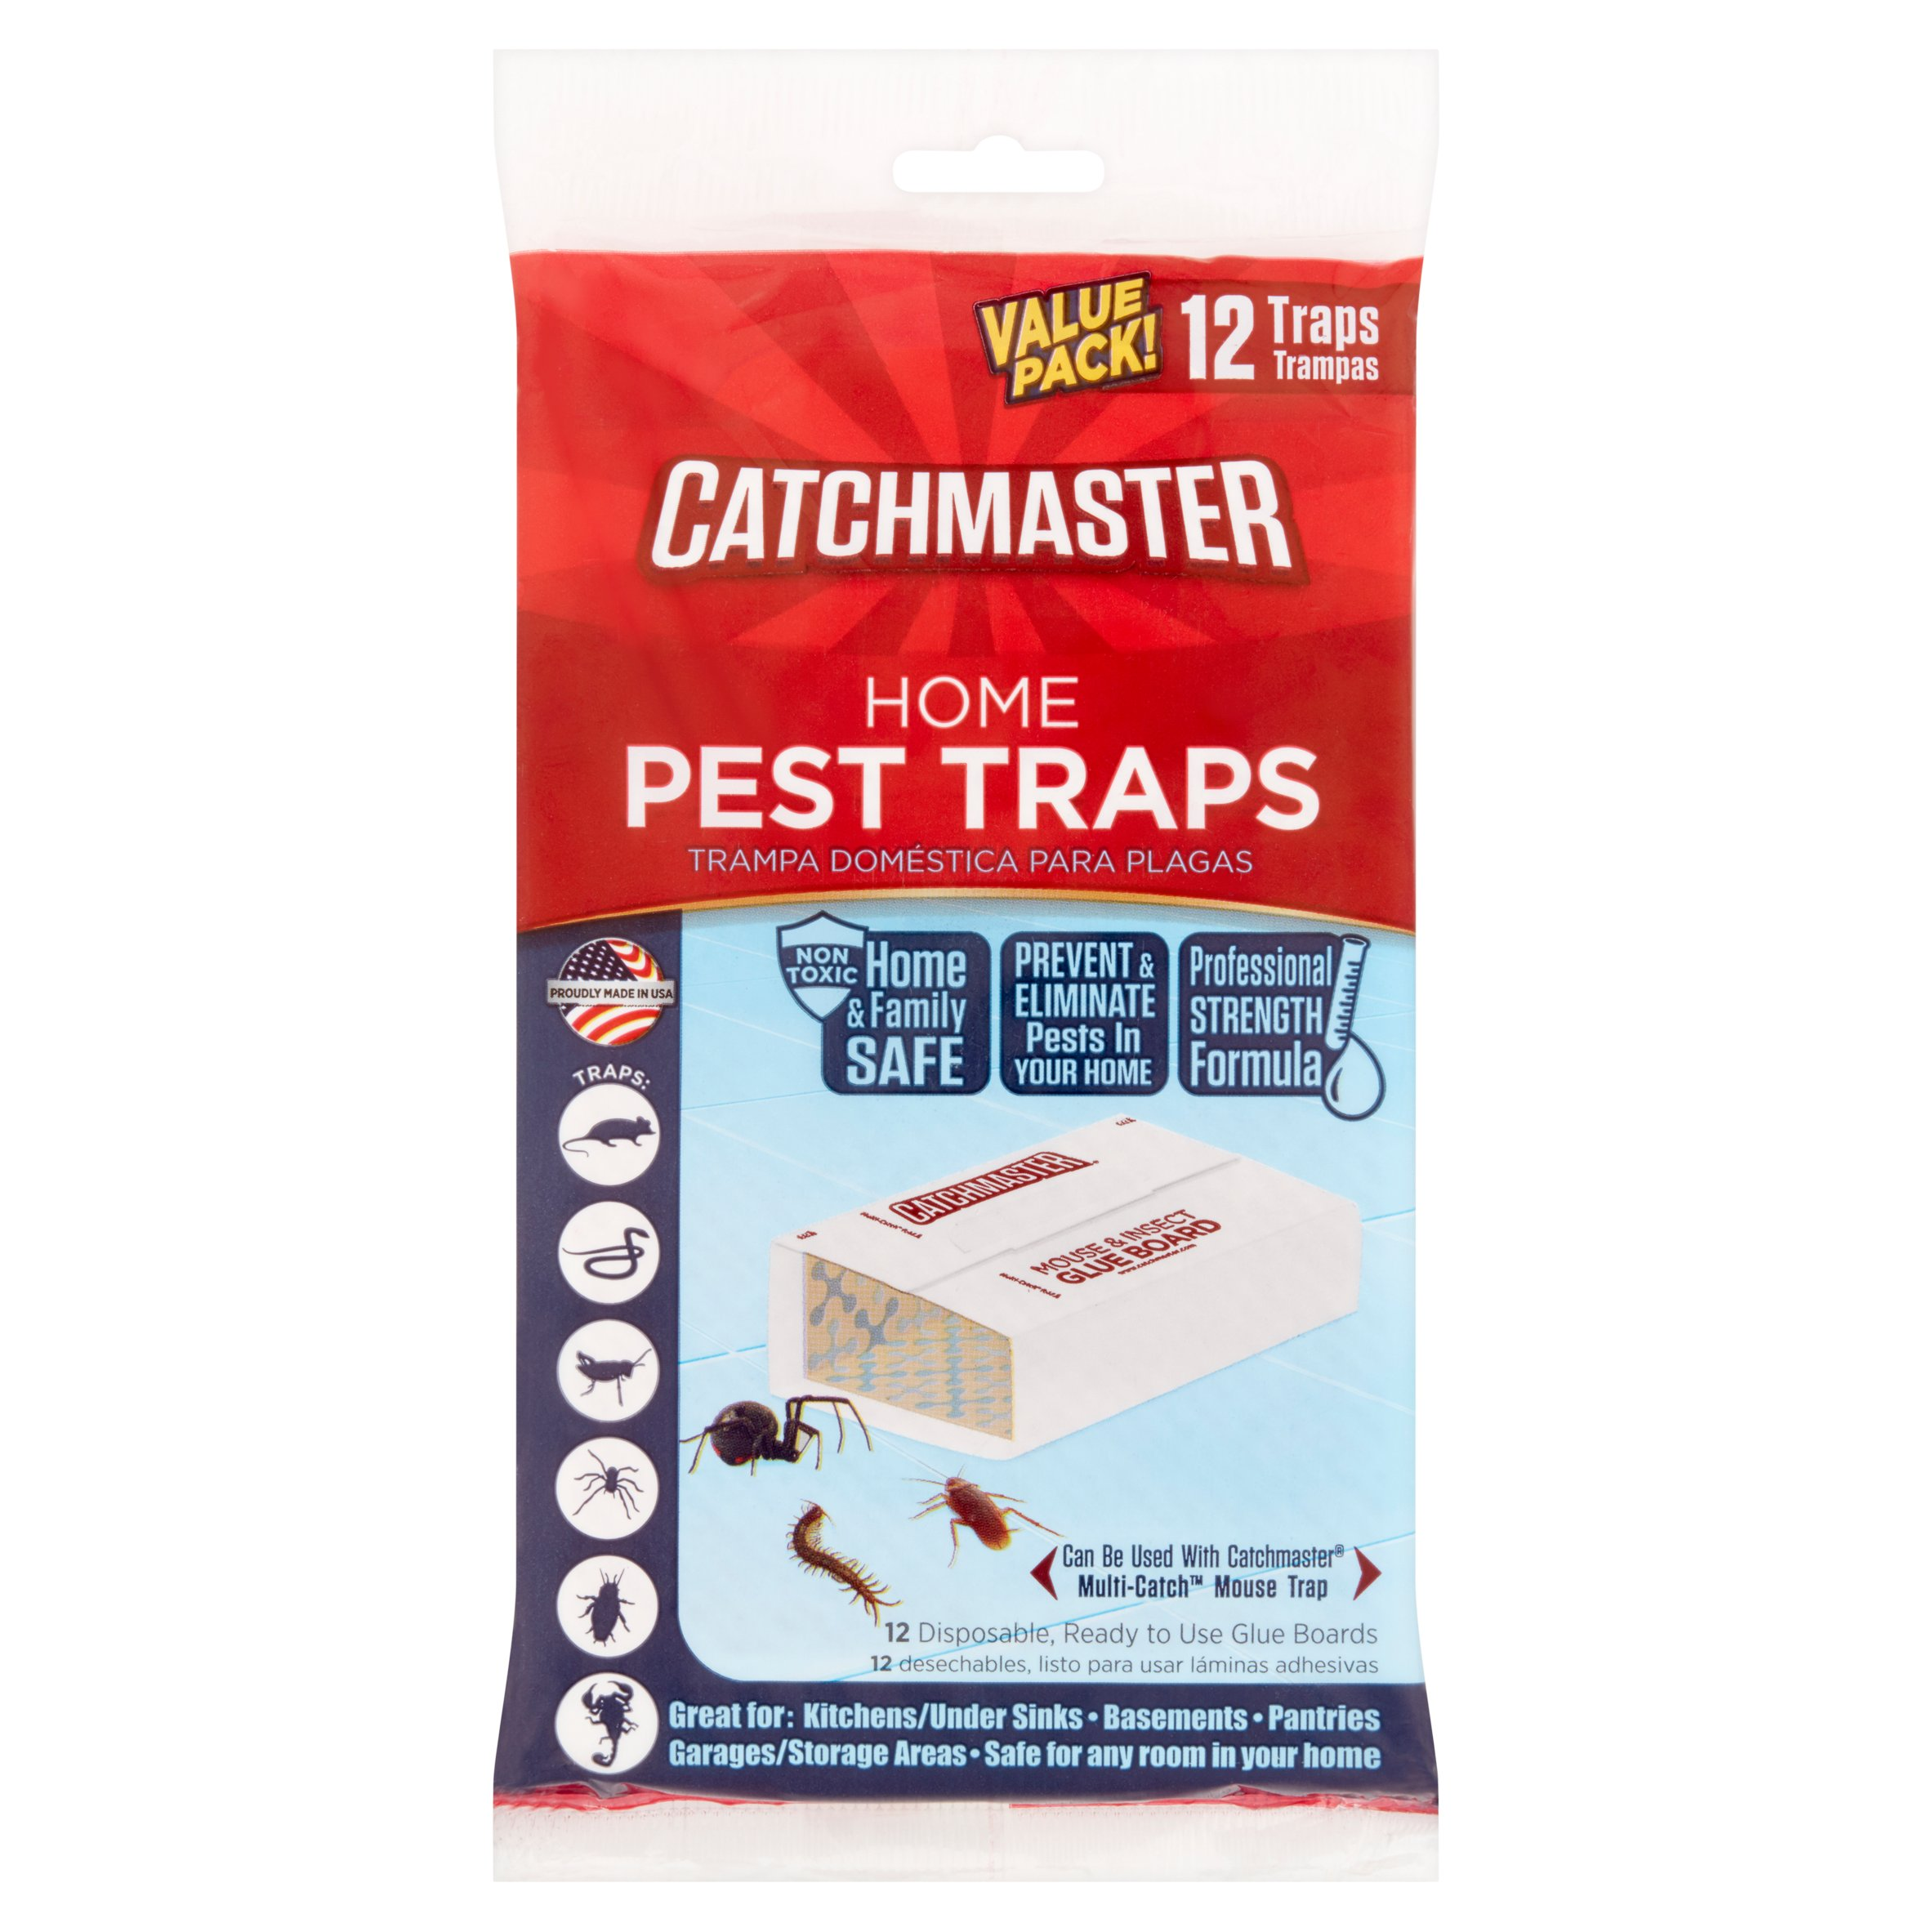 Catchmaster Value Pack! Home Pest Traps, 12 count